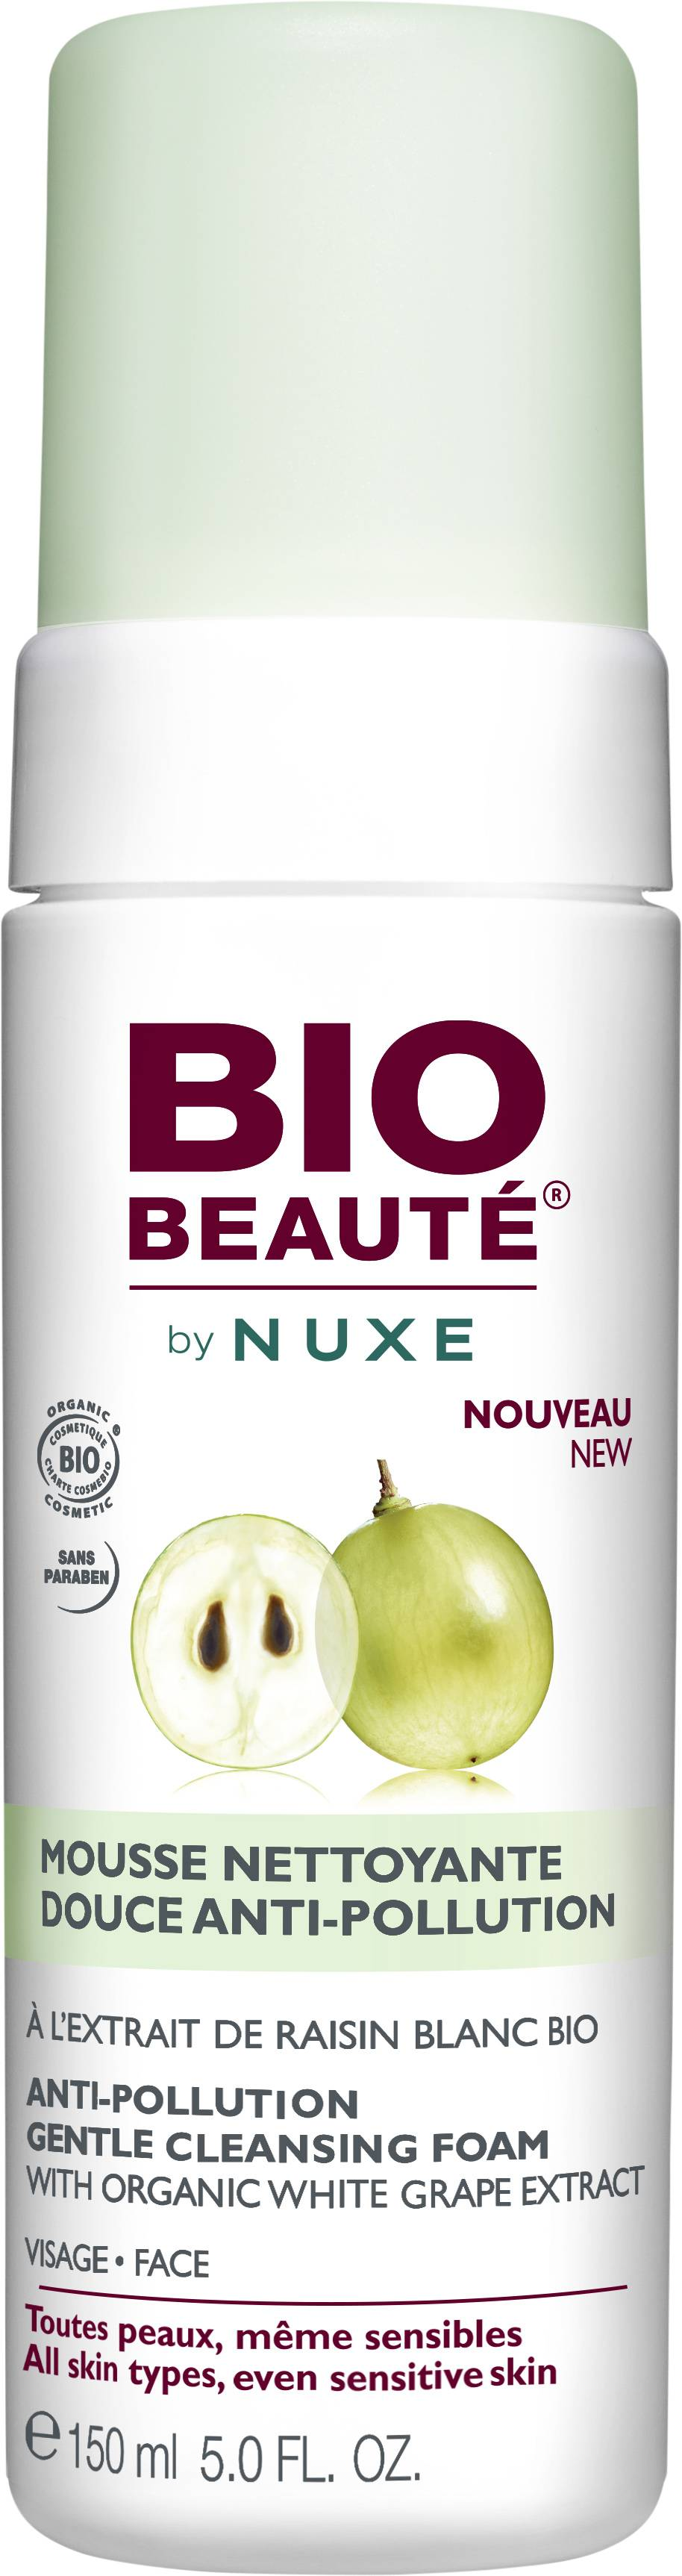 Bio Beauté by Nuxe Anti-Pollution Cleansing Foam 150 ml